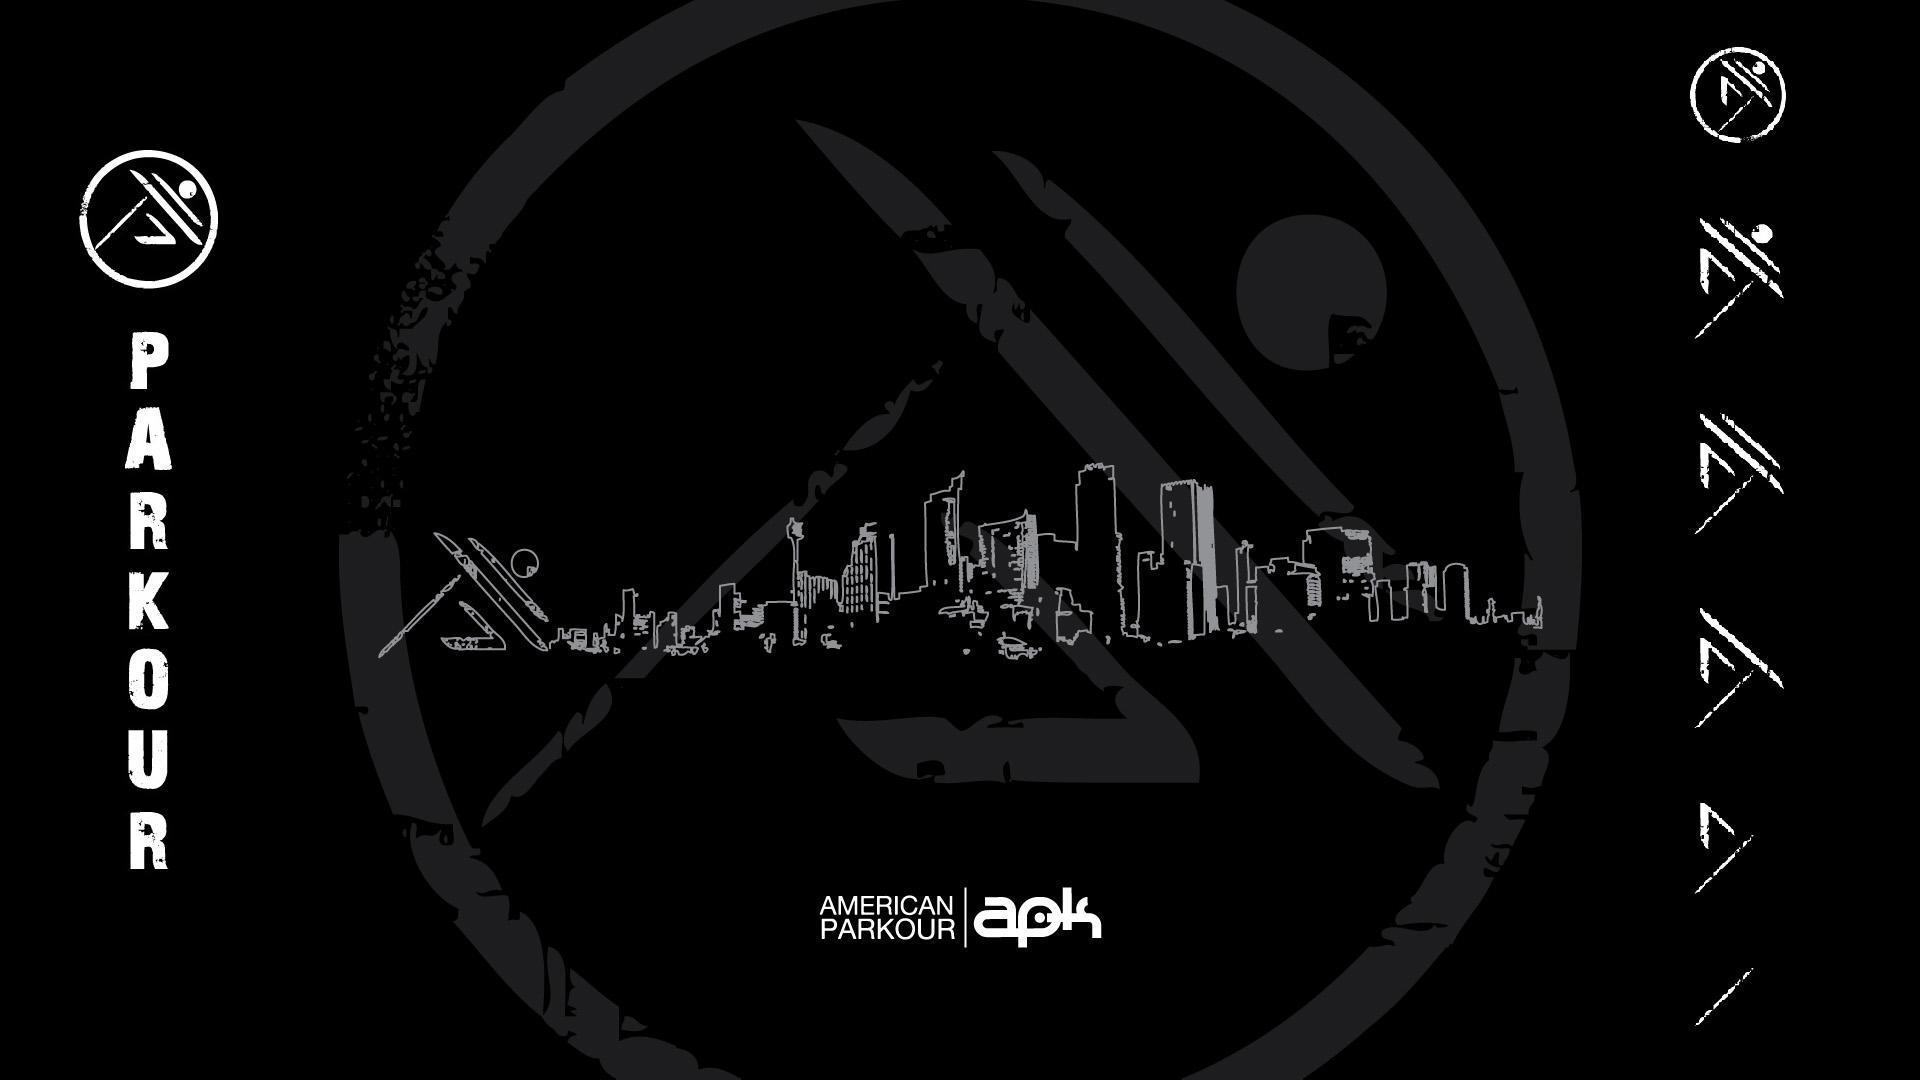 Download Parkour Nation Wallpapers 1920x1080